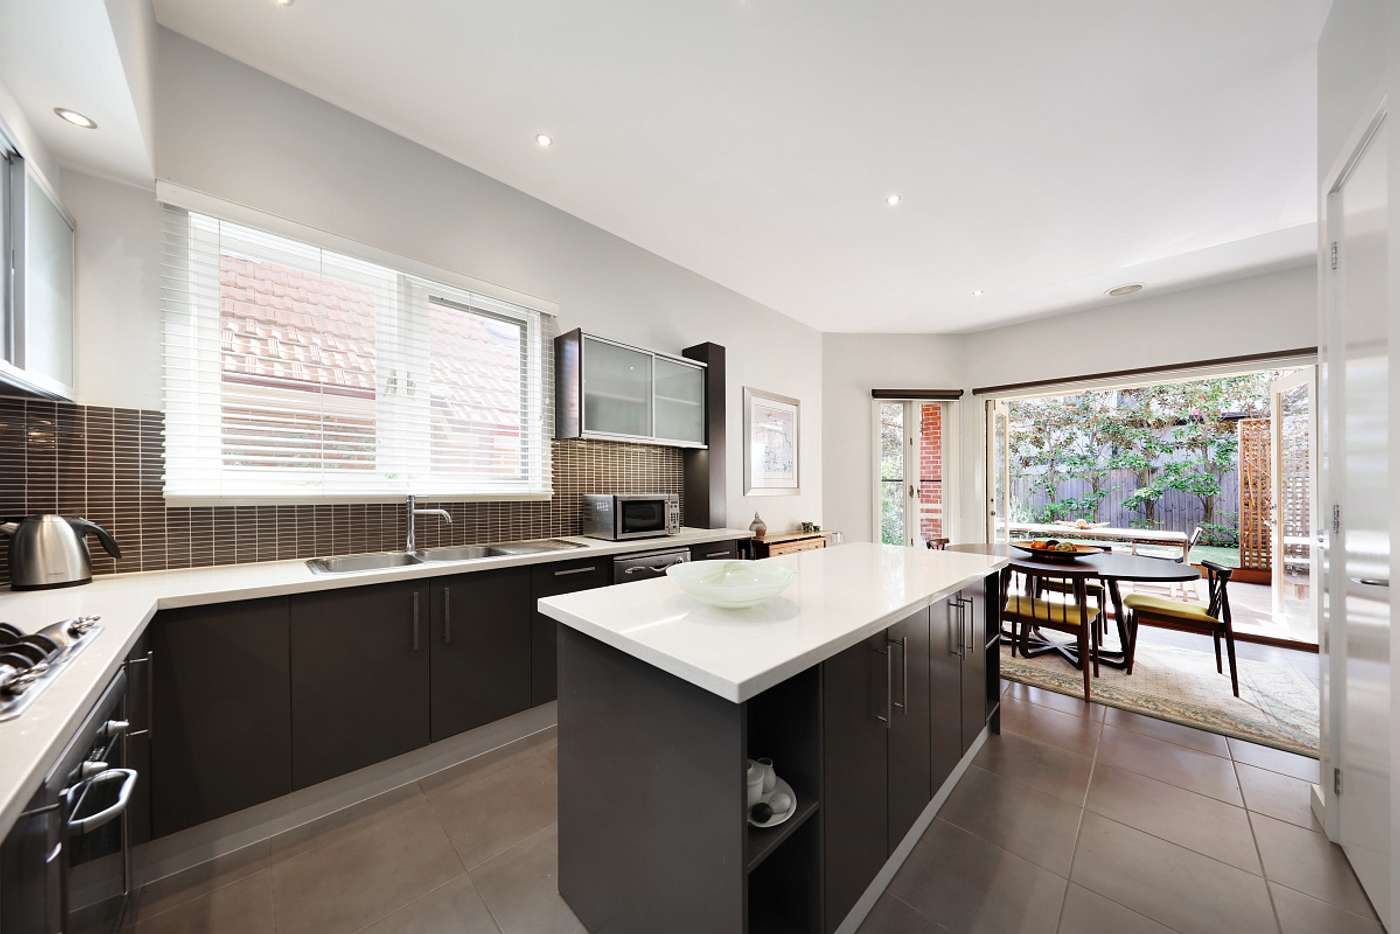 Fifth view of Homely house listing, 27 Tulip Grove, Cheltenham VIC 3192